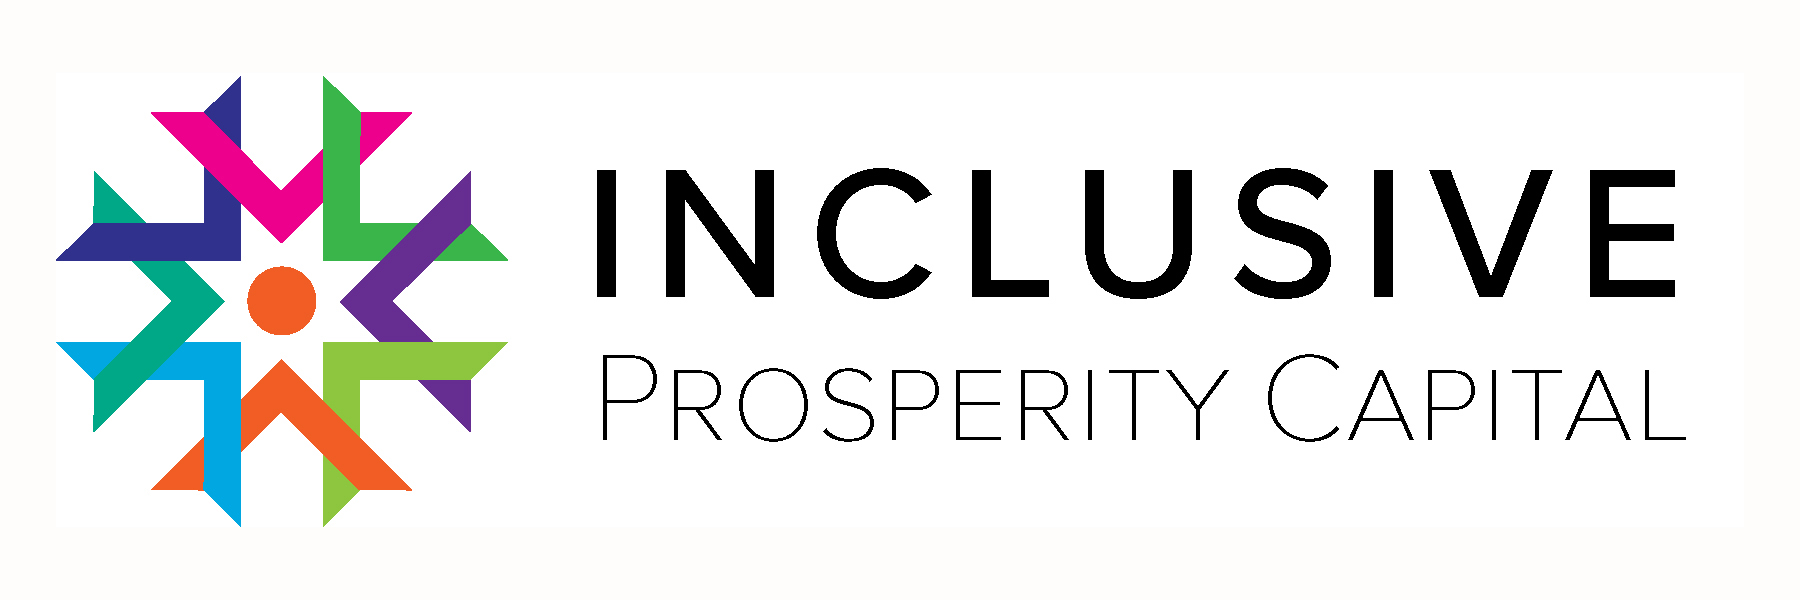 Inclusive Prosperity Capital